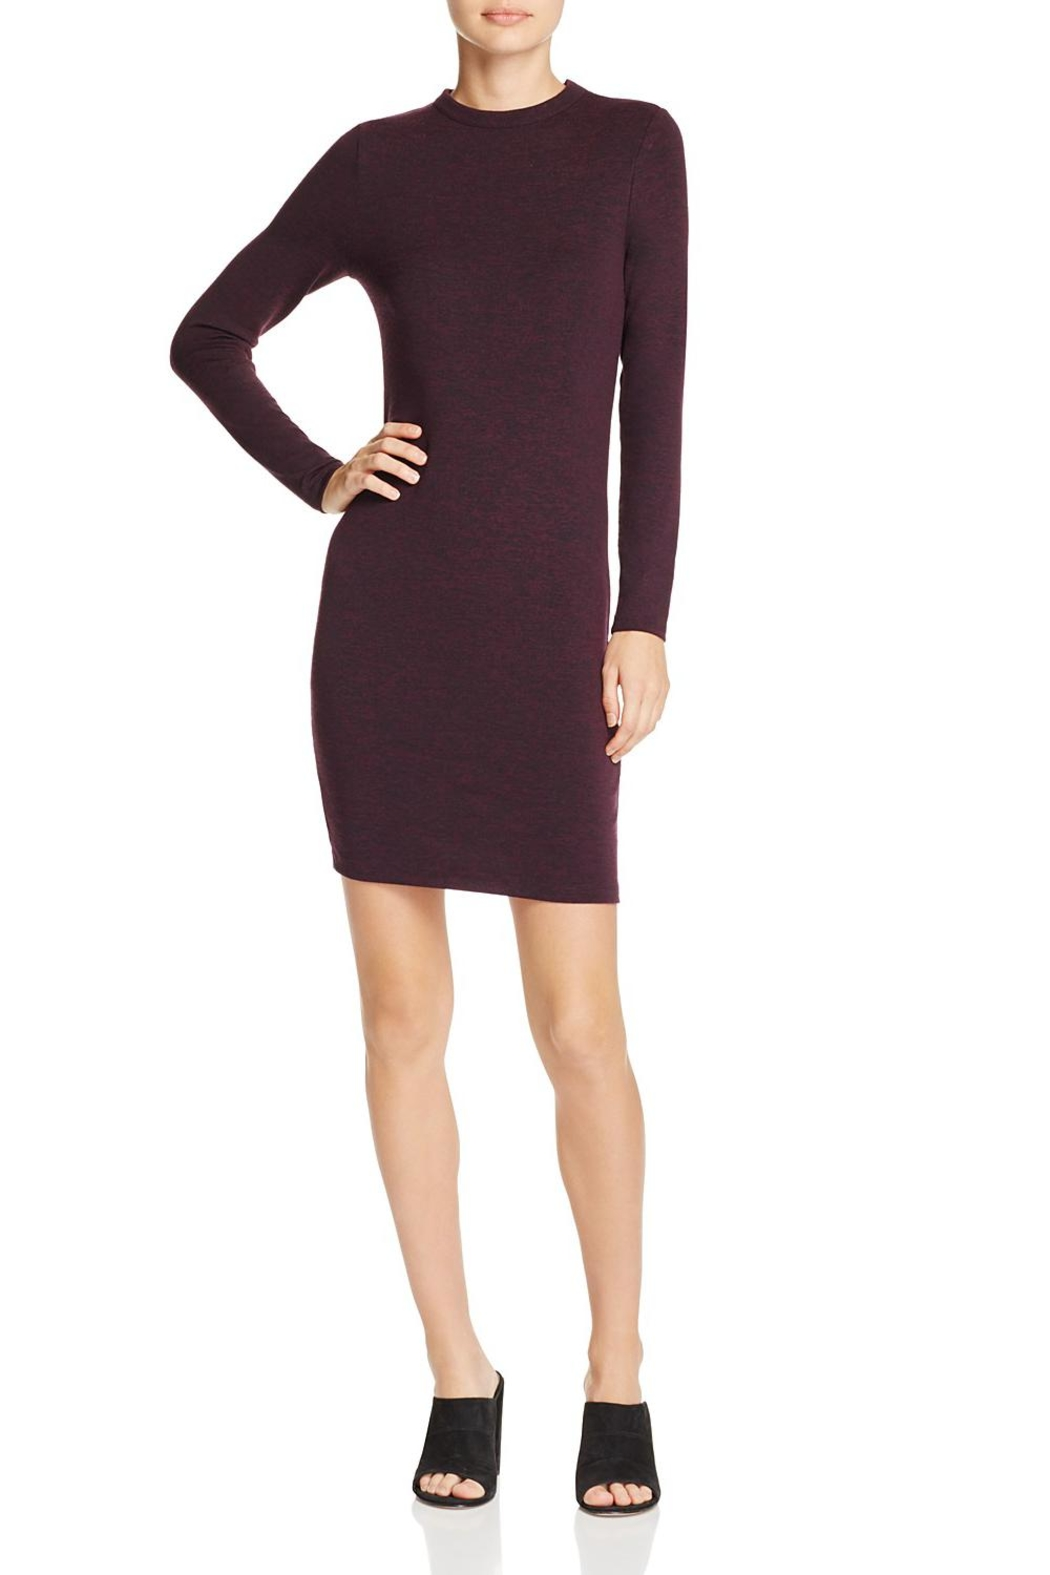 French Connection Sweeter Sweater Mini-Dress - Main Image